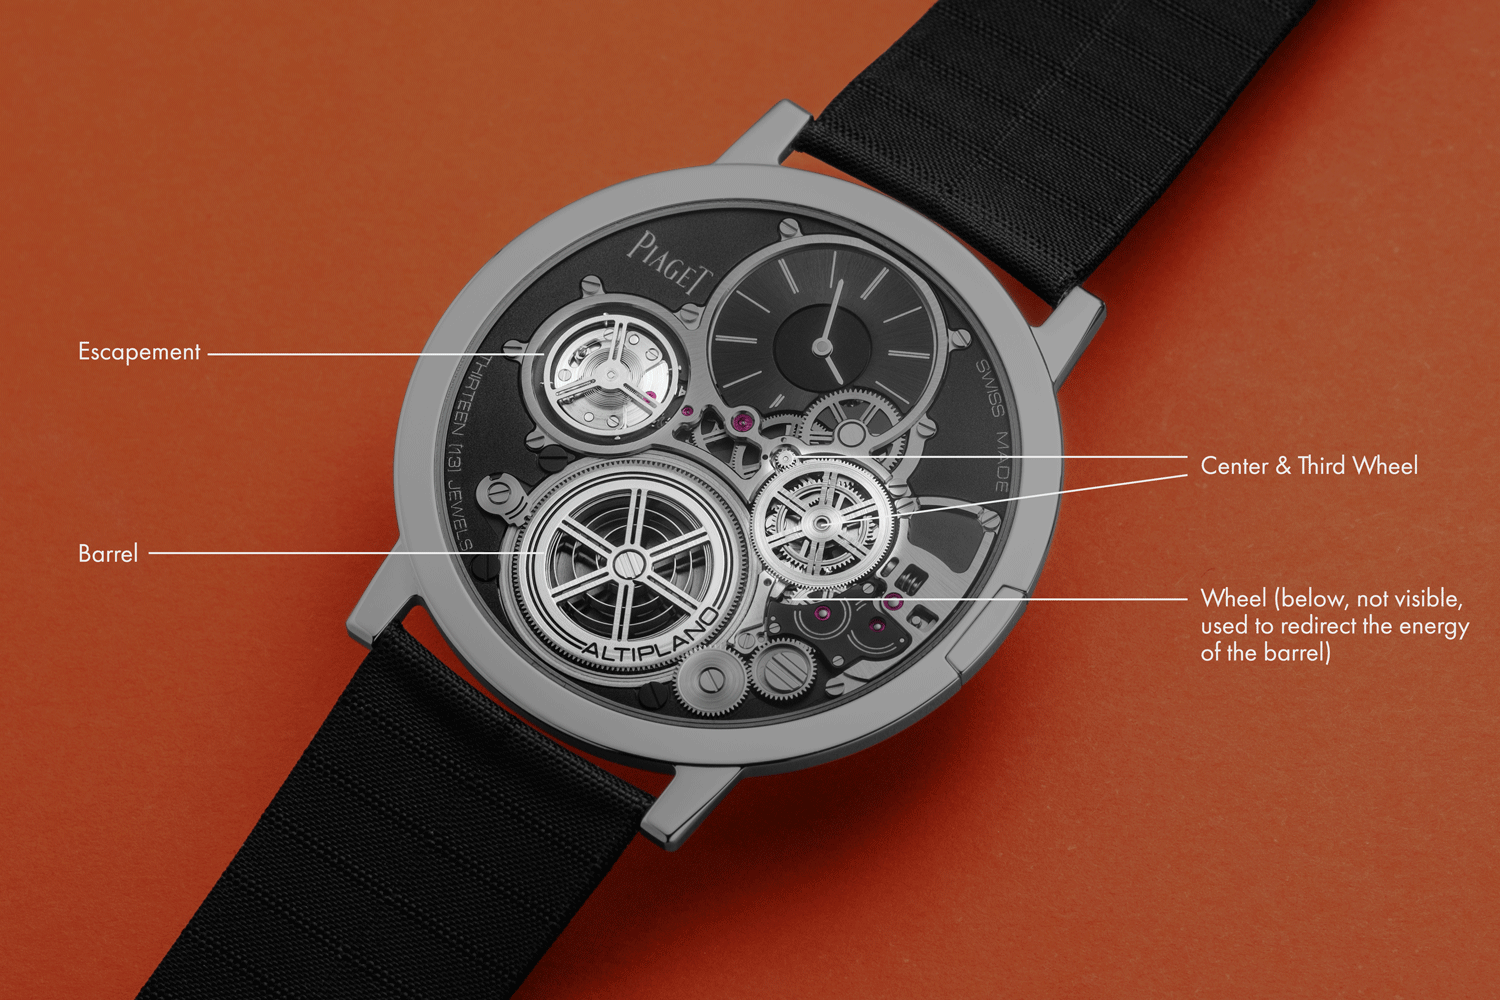 Components of the Piaget Altiplano Ultimate Concept that are supported on ball bearings (©Revolution)